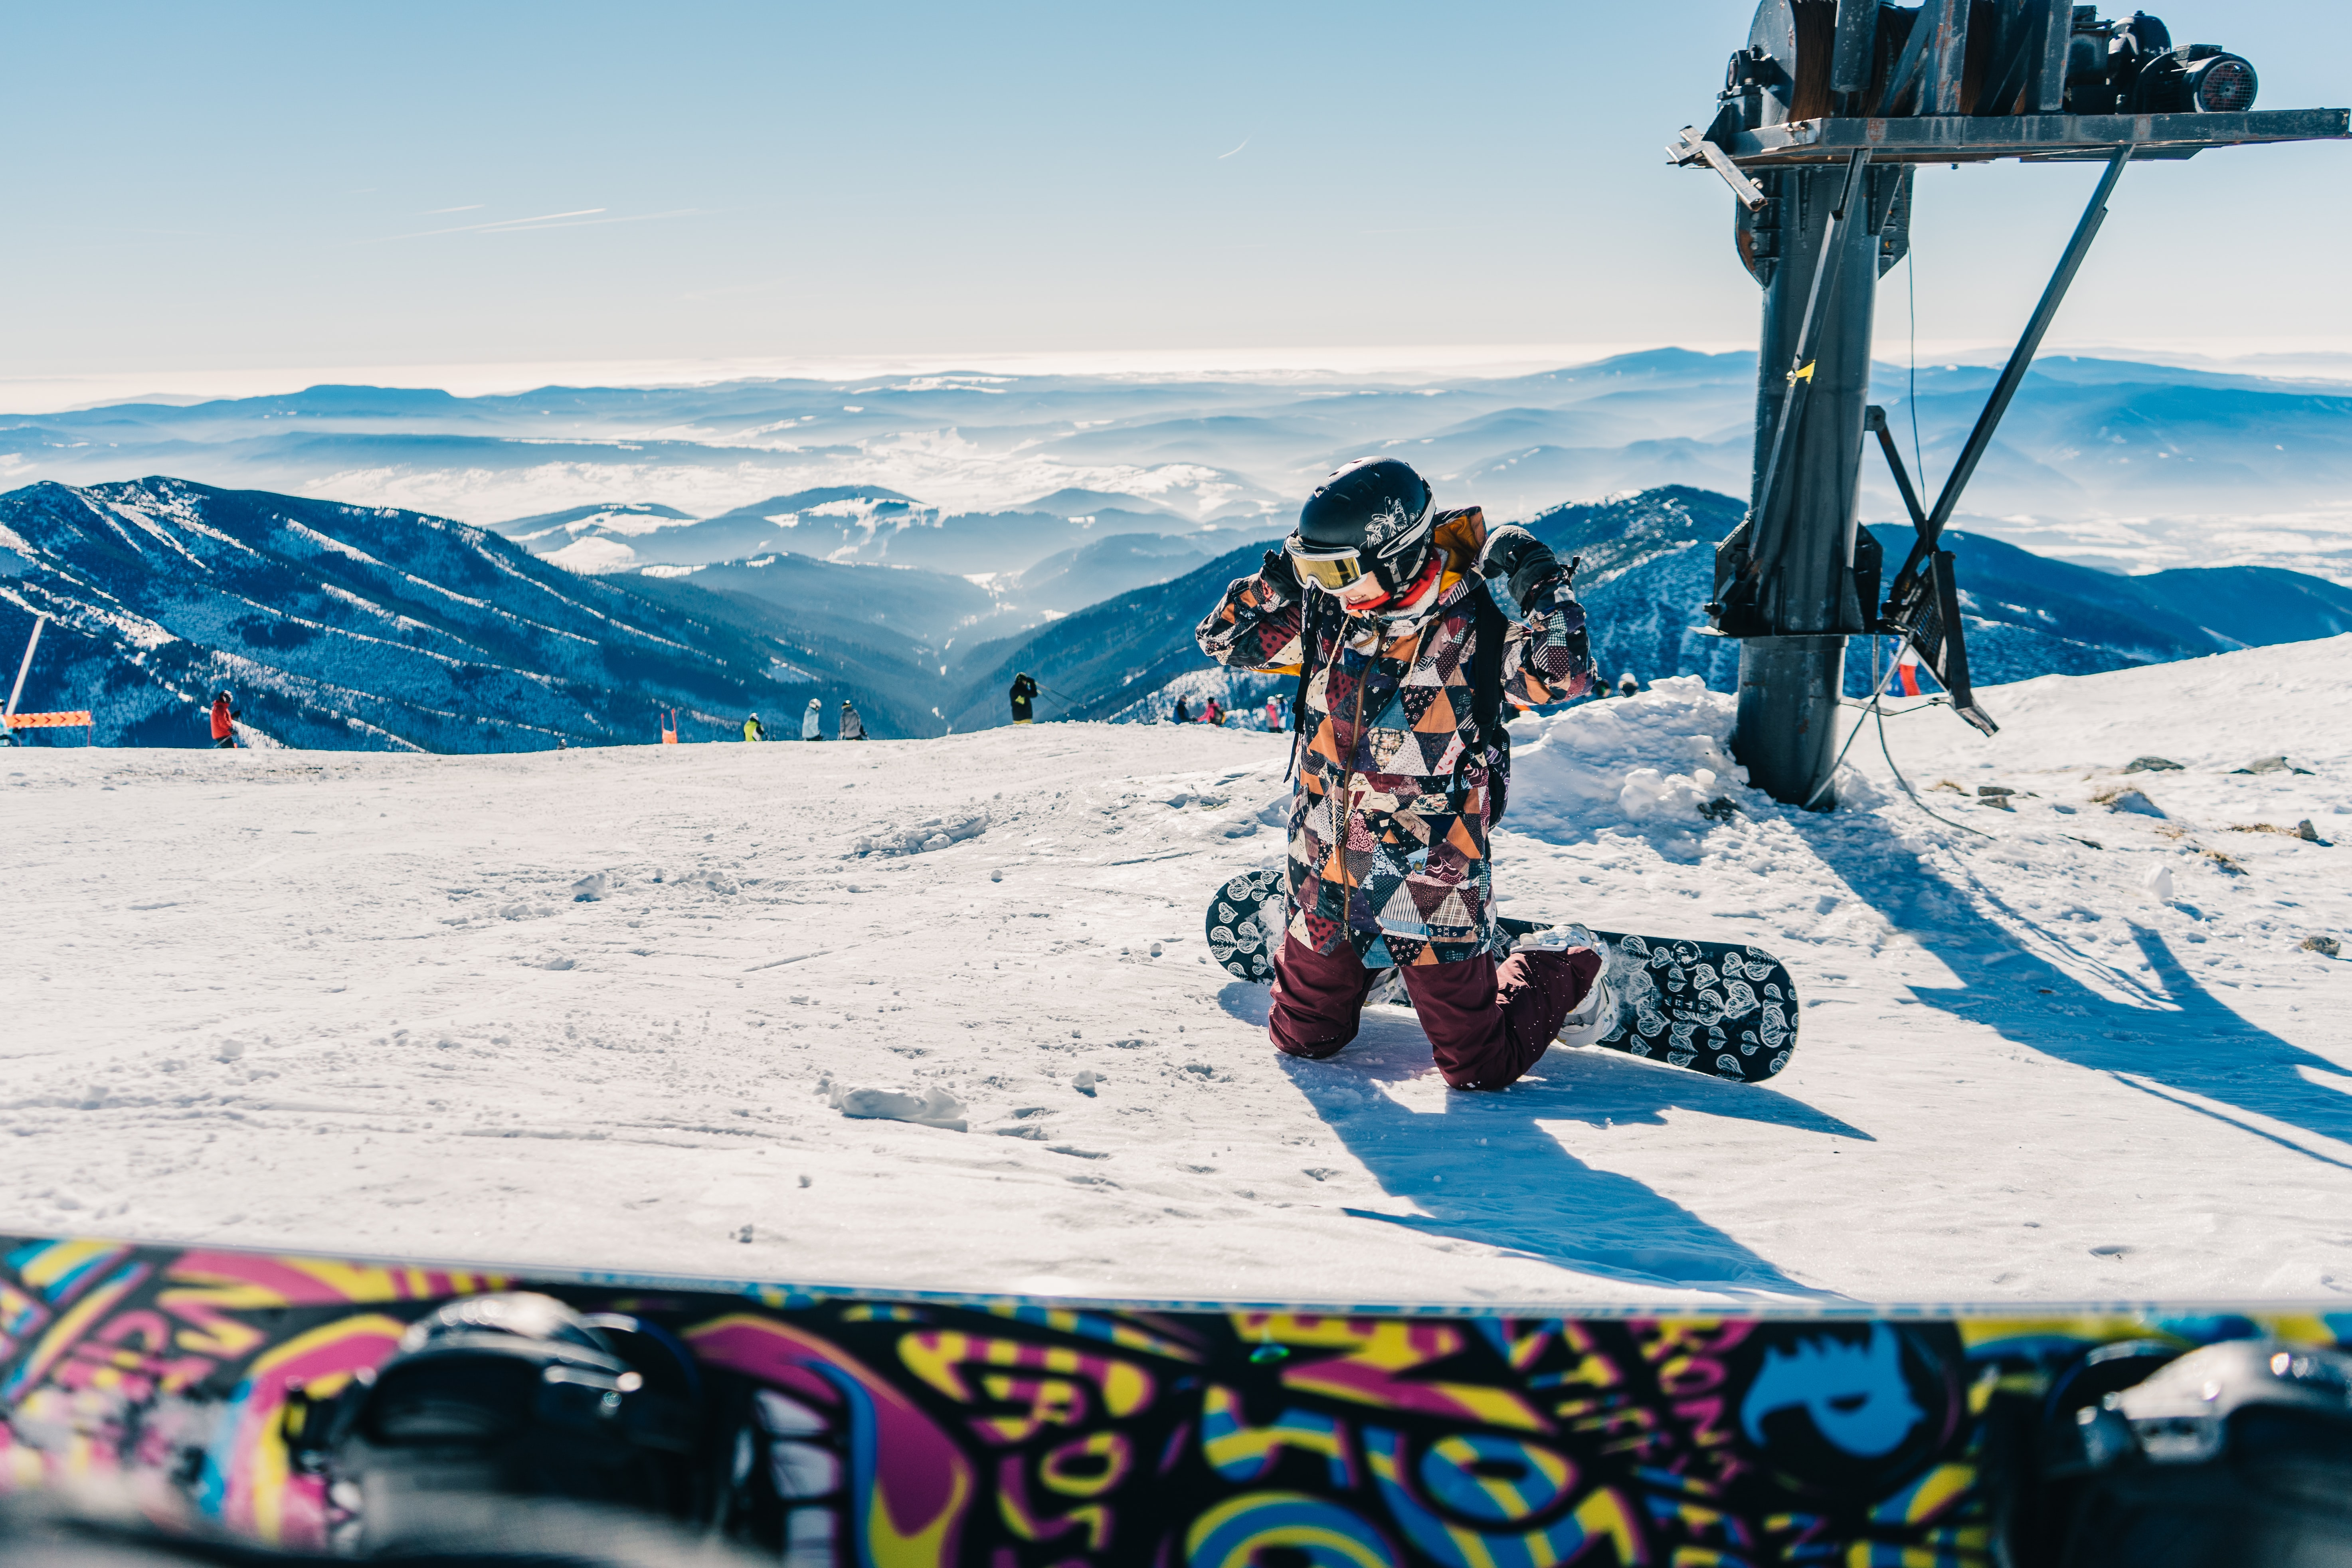 A warmly dressed snowboarder with a colorful snowboard at a Jasna snow hill